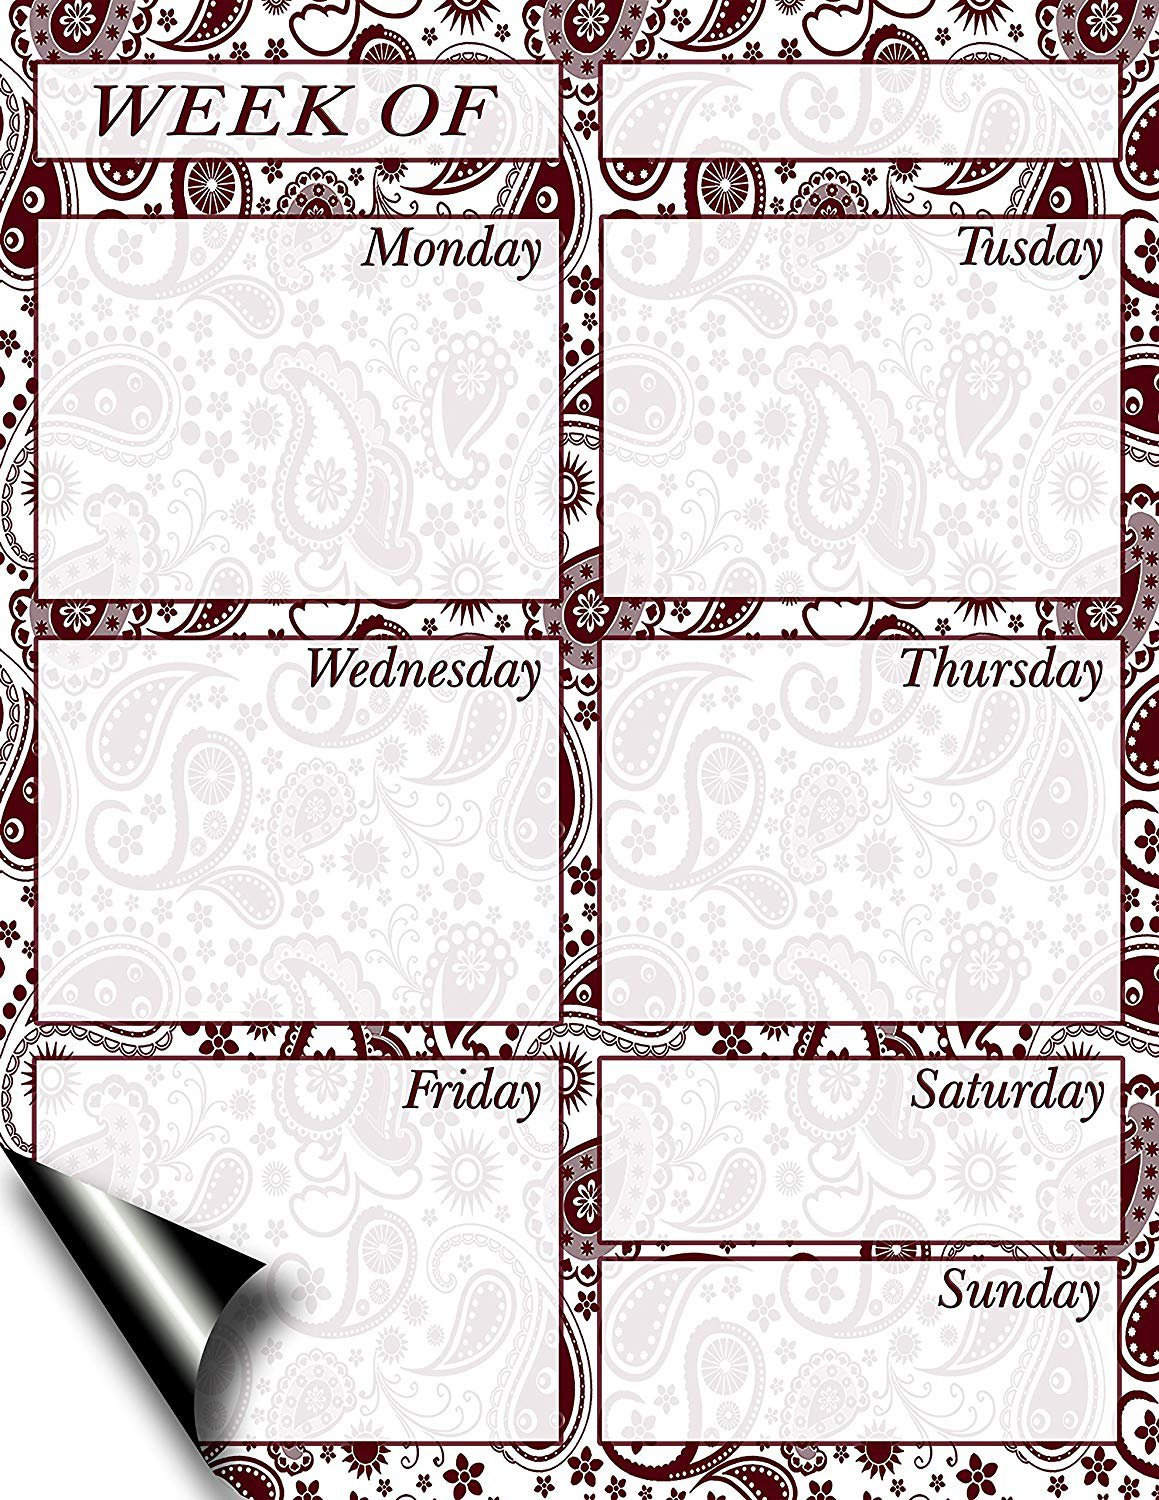 Chore Chart/Weekly Planner/to Do List/Message Board - (Edition #11) (Weekly Planner)